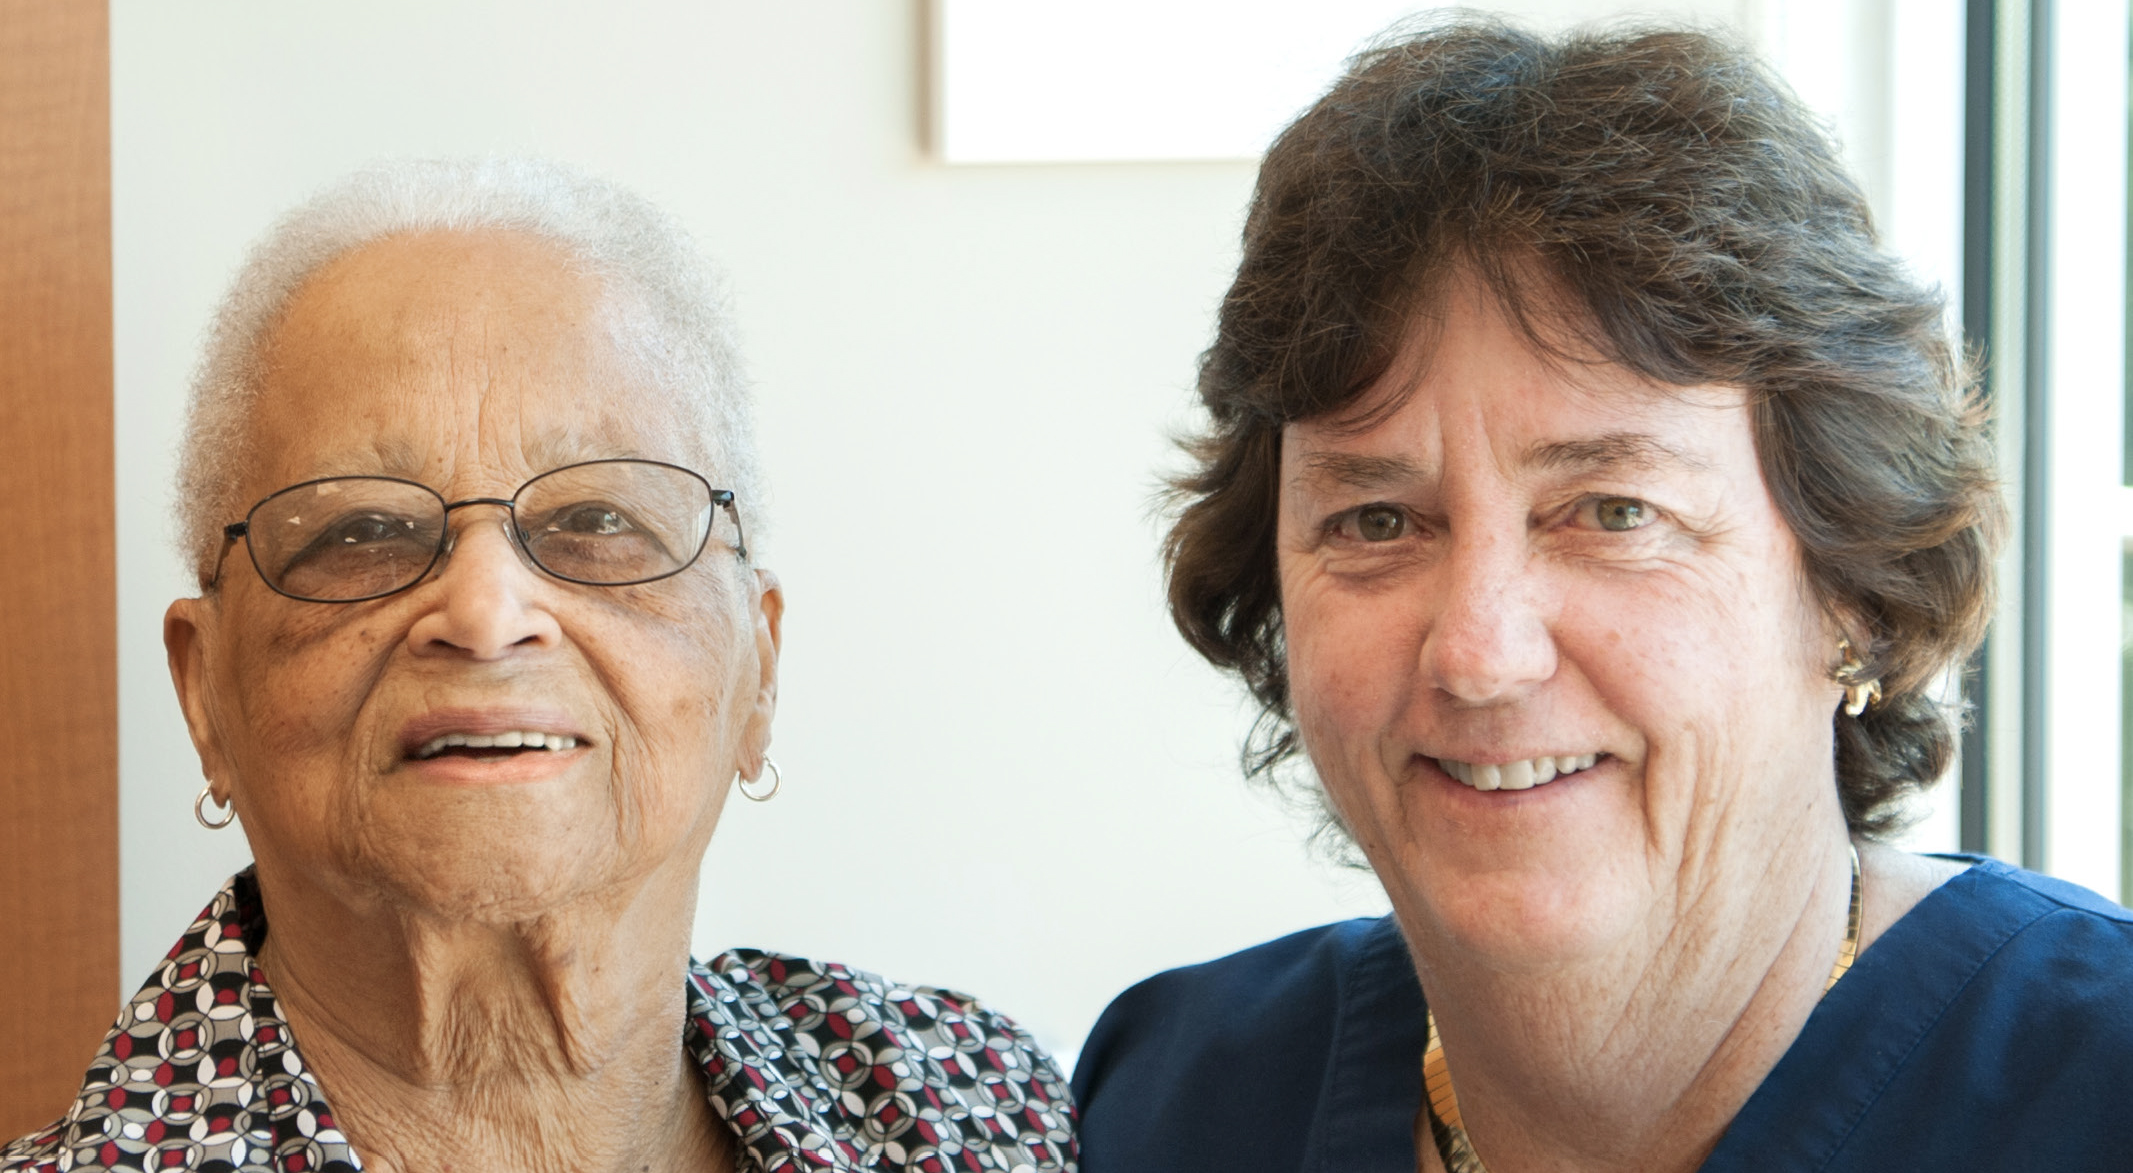 From left: Edith Holder and